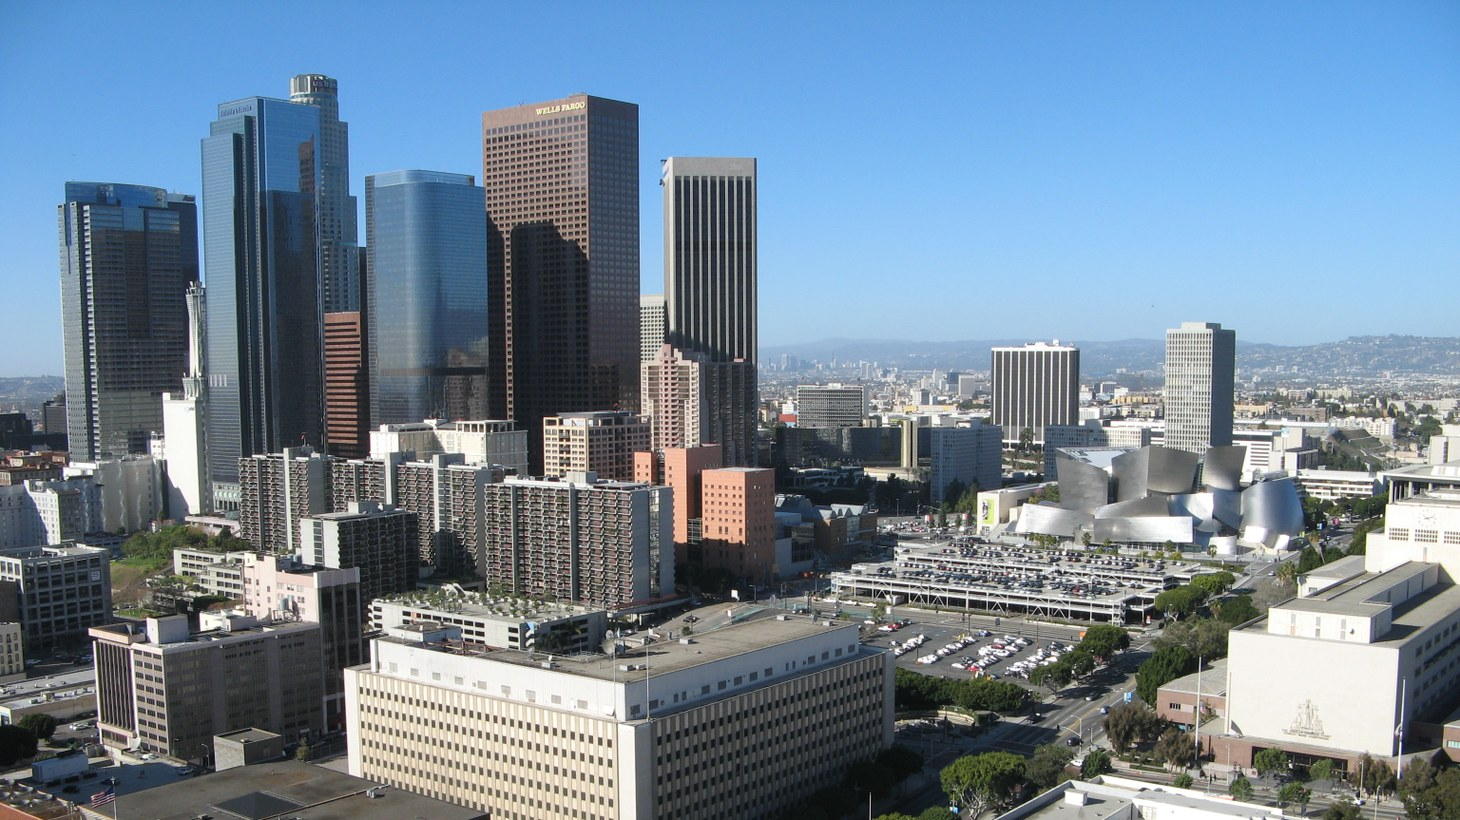 The Central Business District (CBD) in downtown Los Angeles is typical of CBDs in global cities around the world. Could coronavirus cause a reset for urban values?